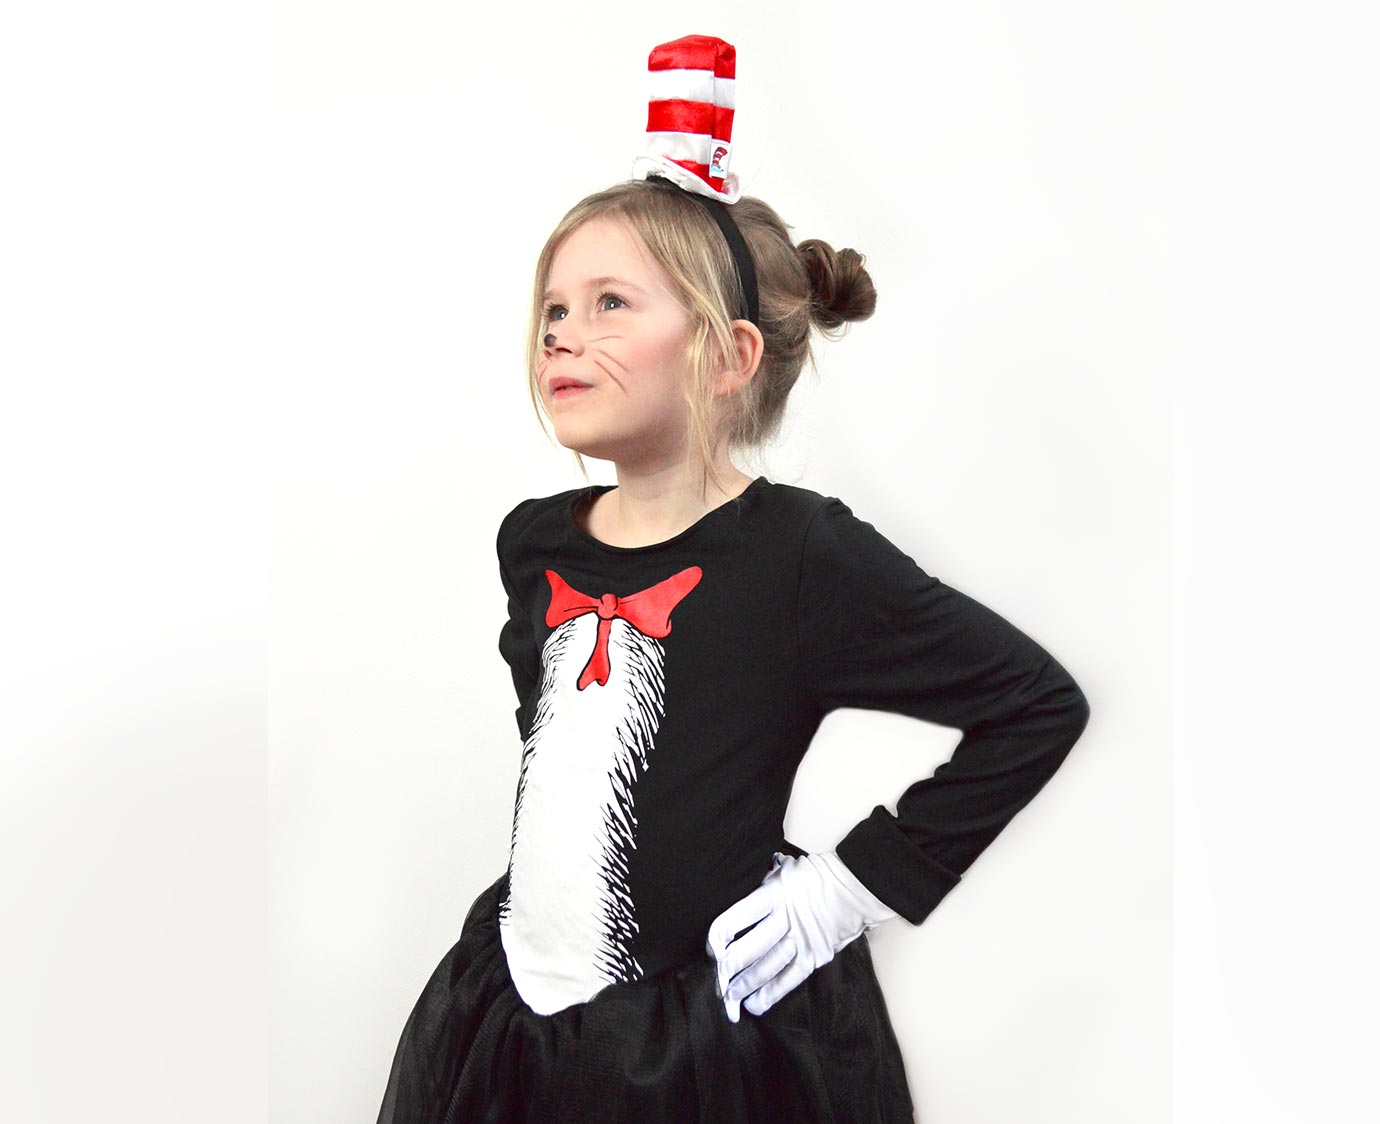 Jurk 'Cat in the hat' kleur